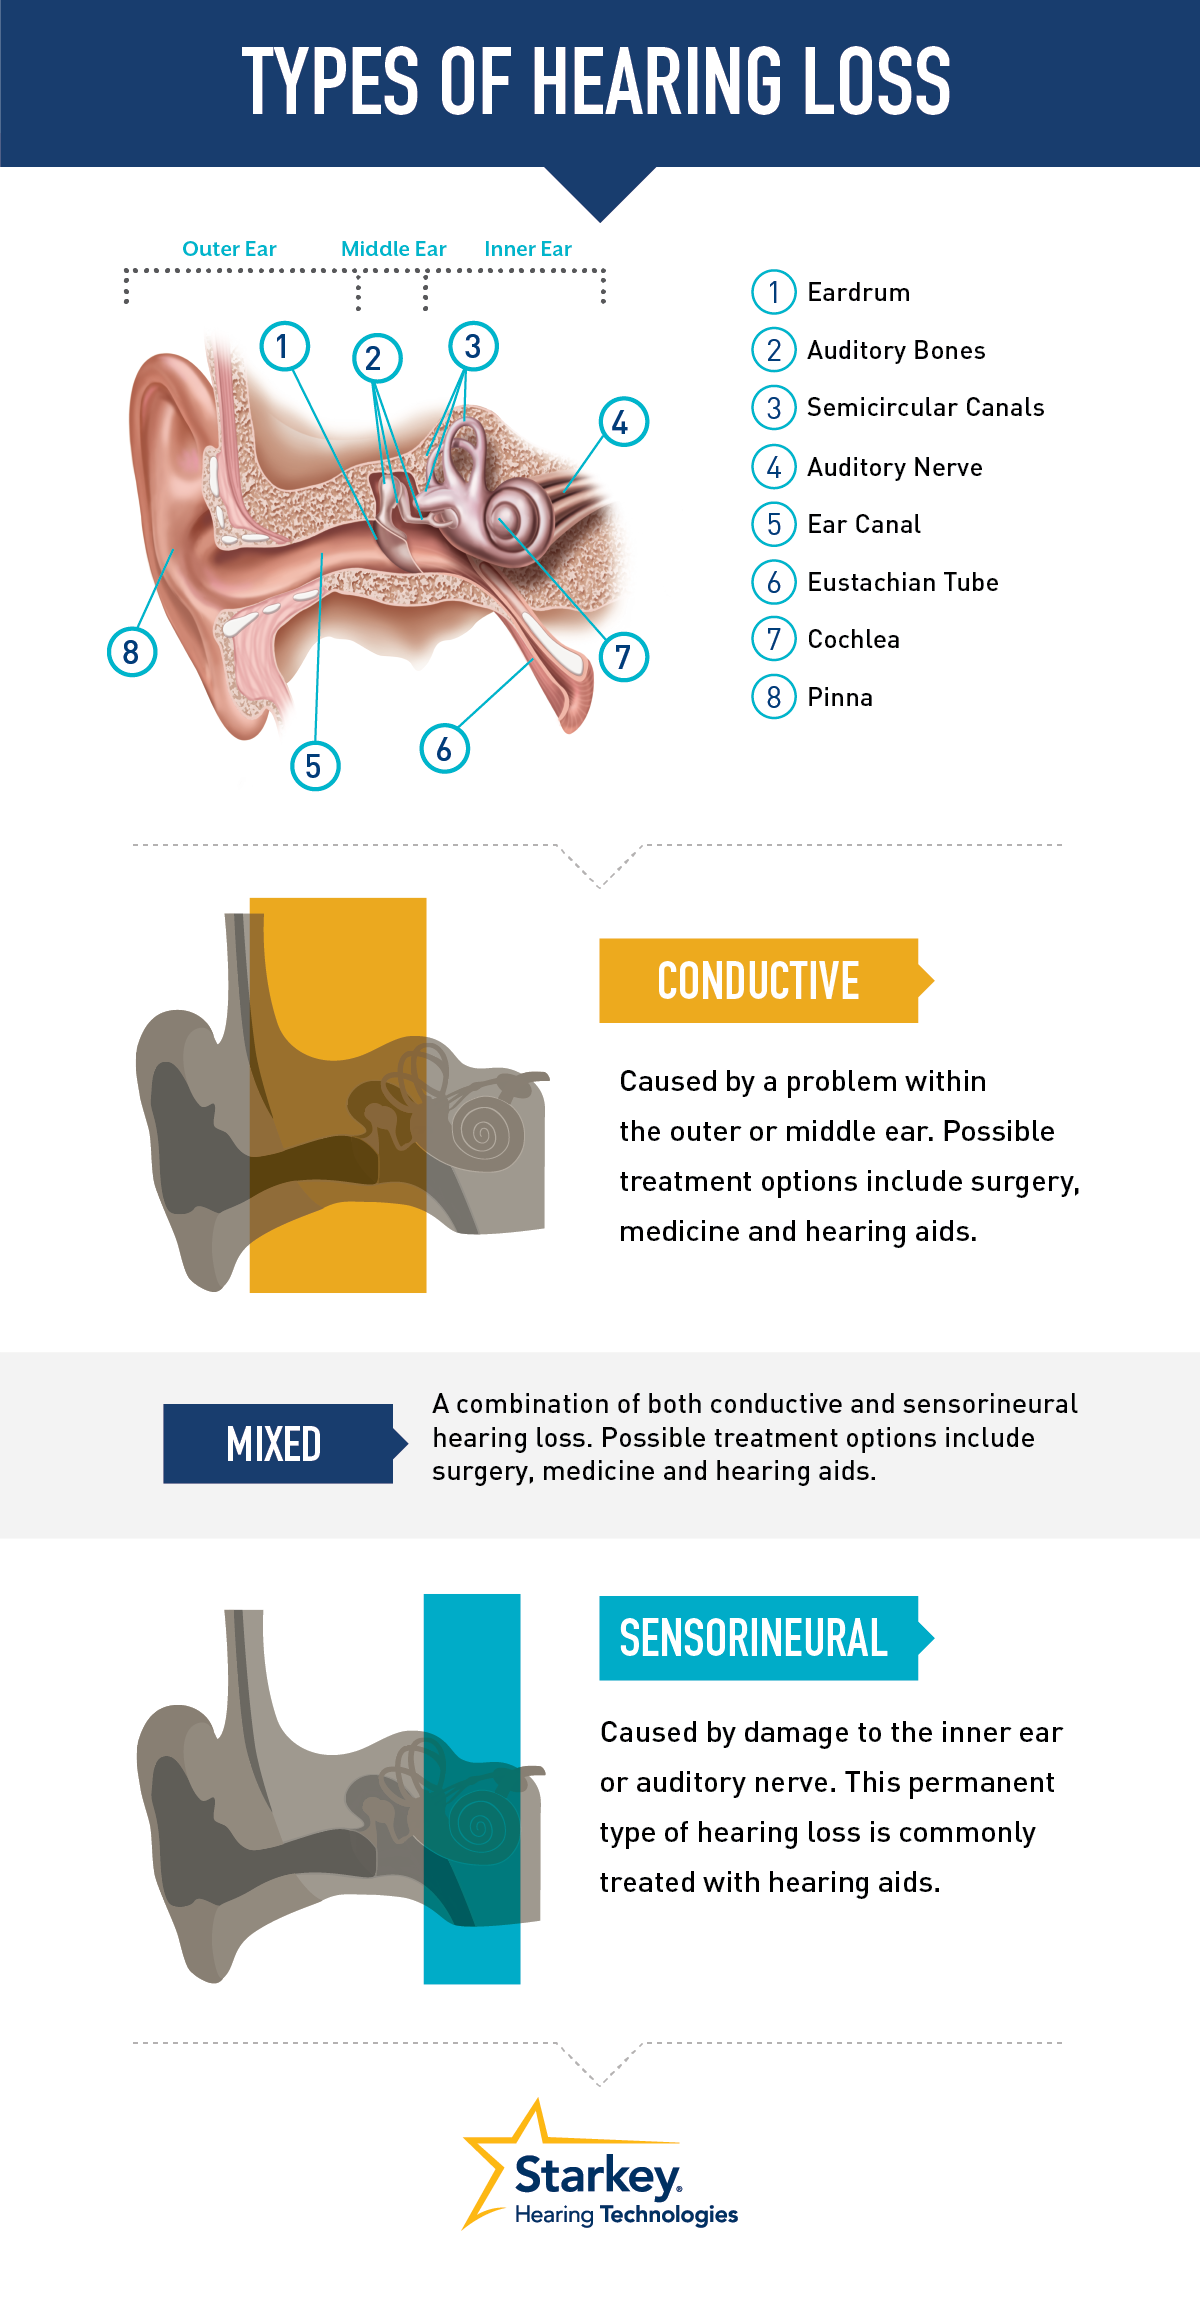 Types of hearing loss....Dr Carron said the middle ear was perfect ...